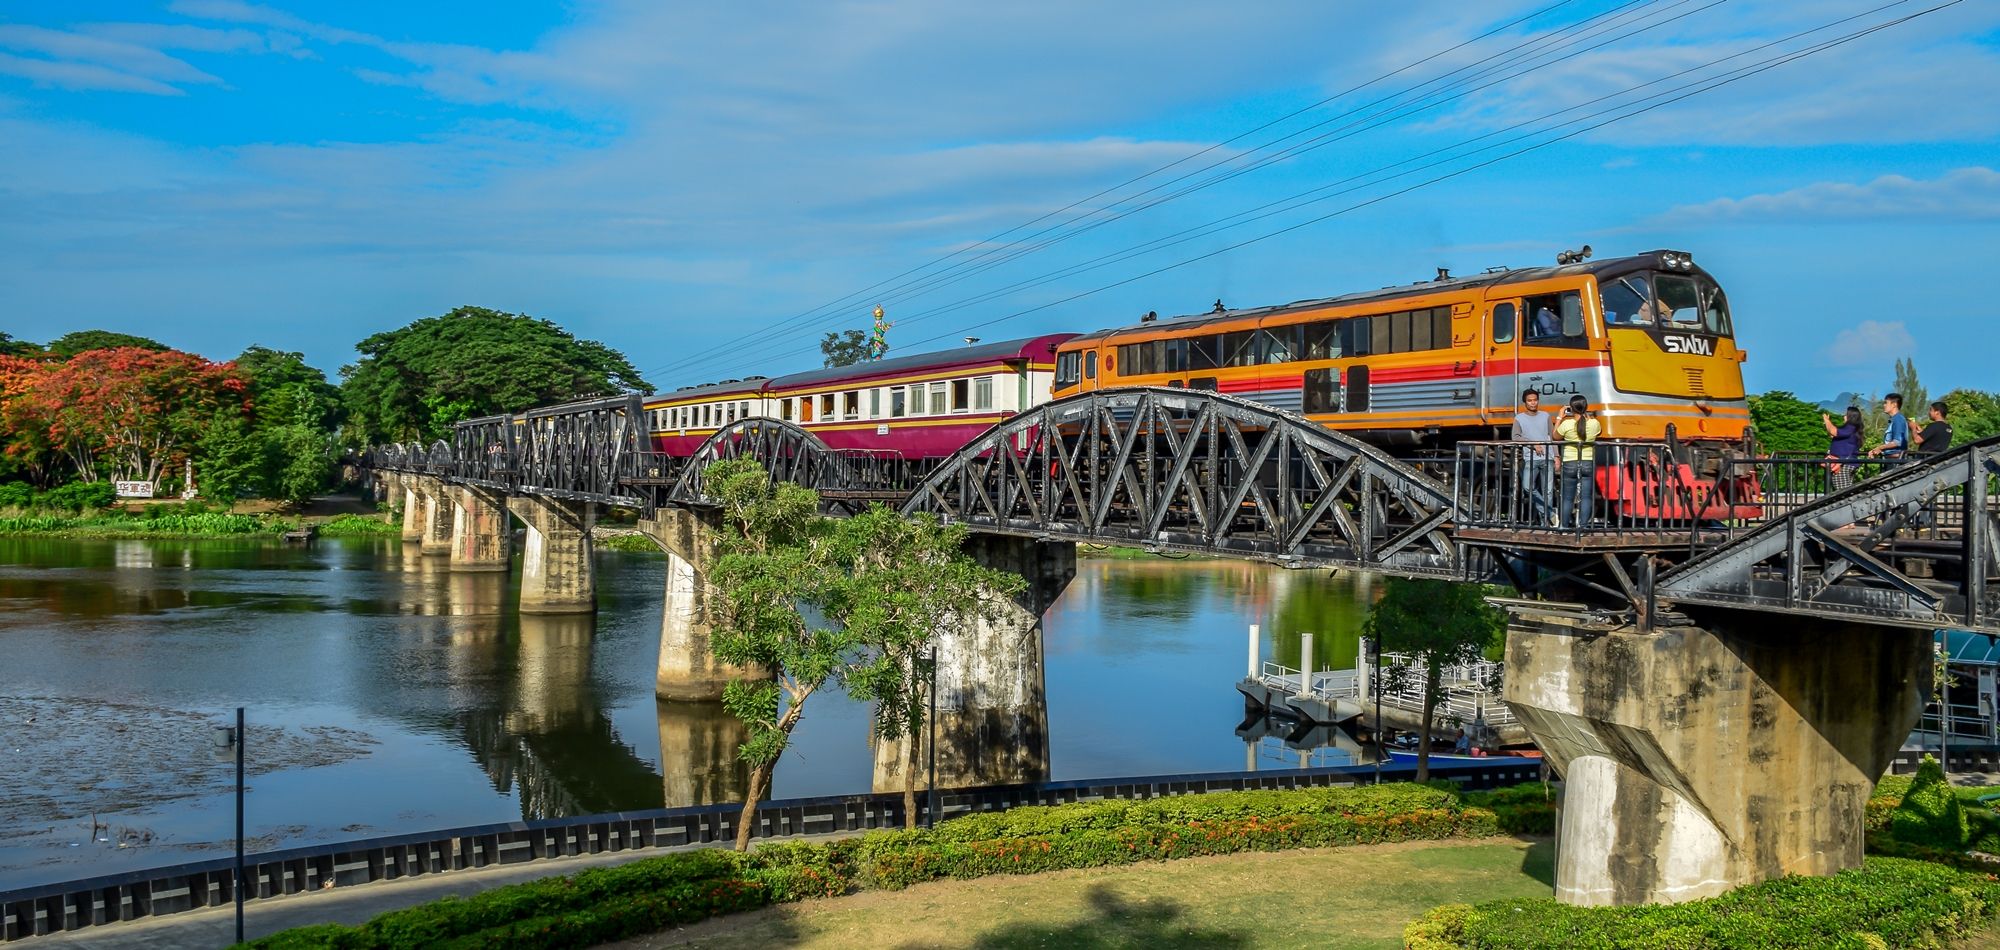 bridge on the river kwai The history of the bridge is well known, as it was part of the railway lines in world war ii and had seen its share of conflict and bloodshed after world war ii, the damaged bridge was renovated by the thai government in 1946 the bridge of the river kwai memorial week is held during late november to early december.